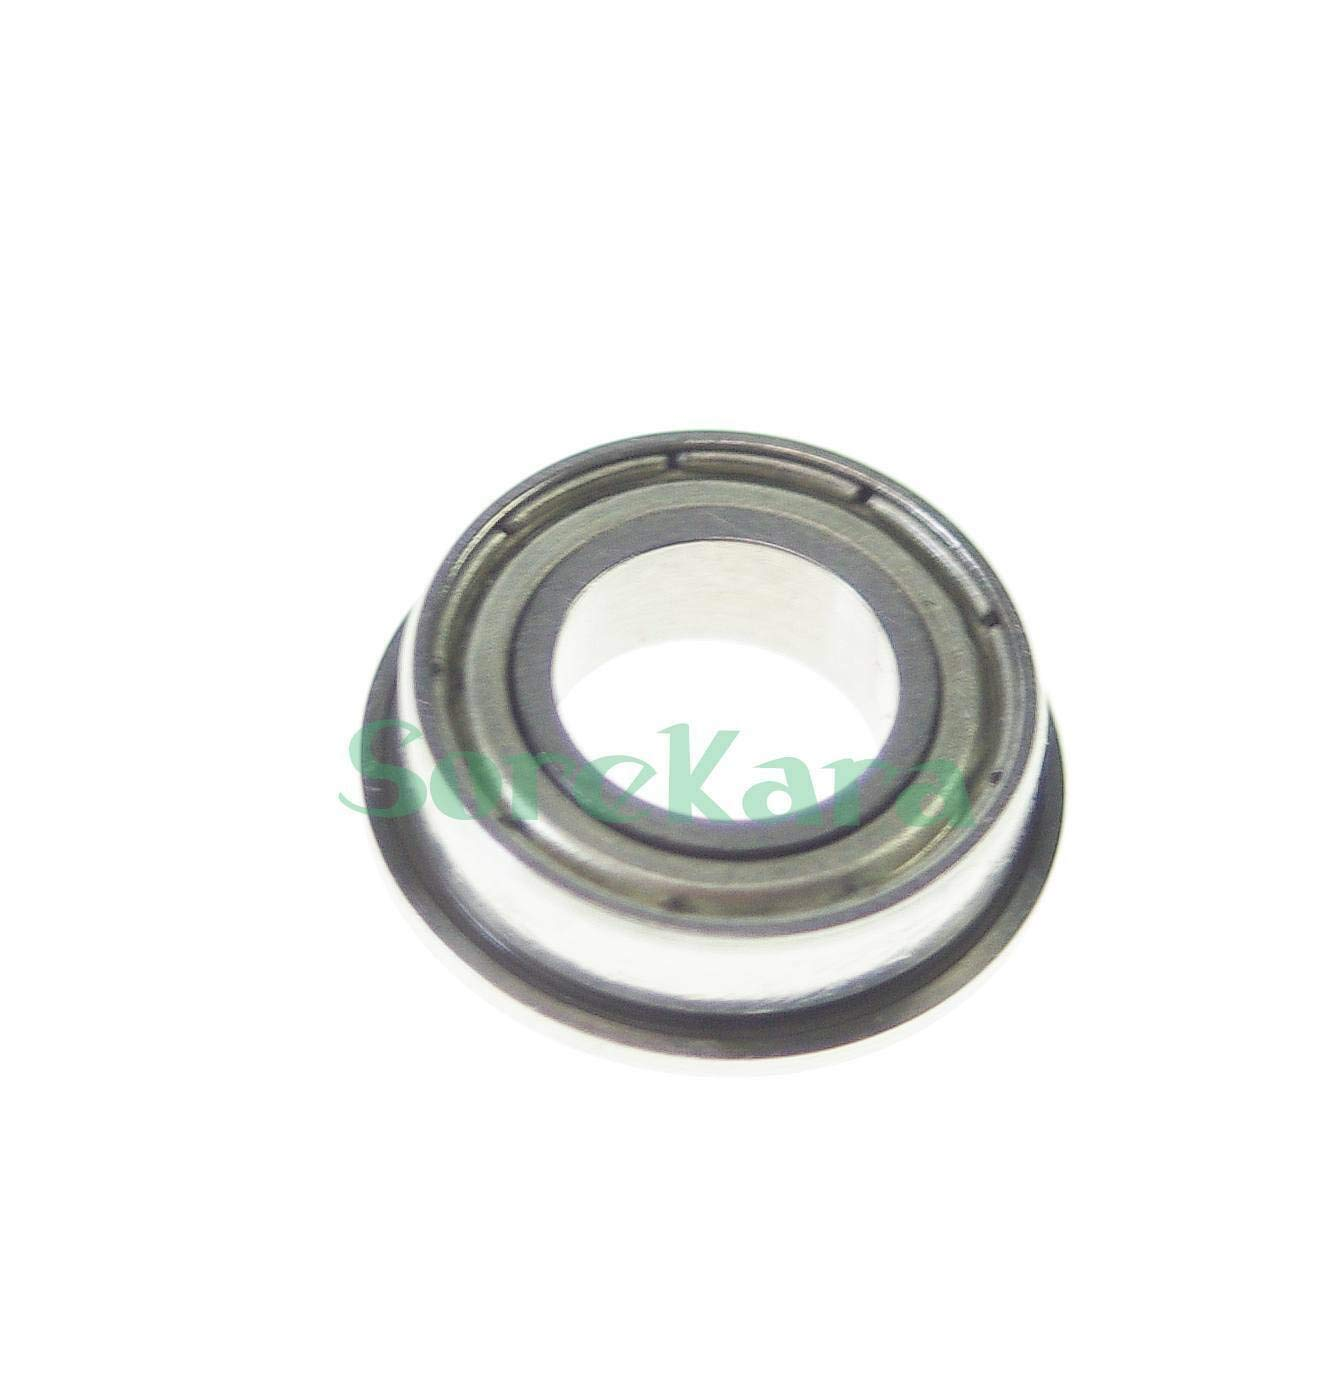 50 Bearing /& Bushing /  1//4 x 3//8 x 1//8 FR168ZZ Shielded Flanged Model Ball Flange Bearing